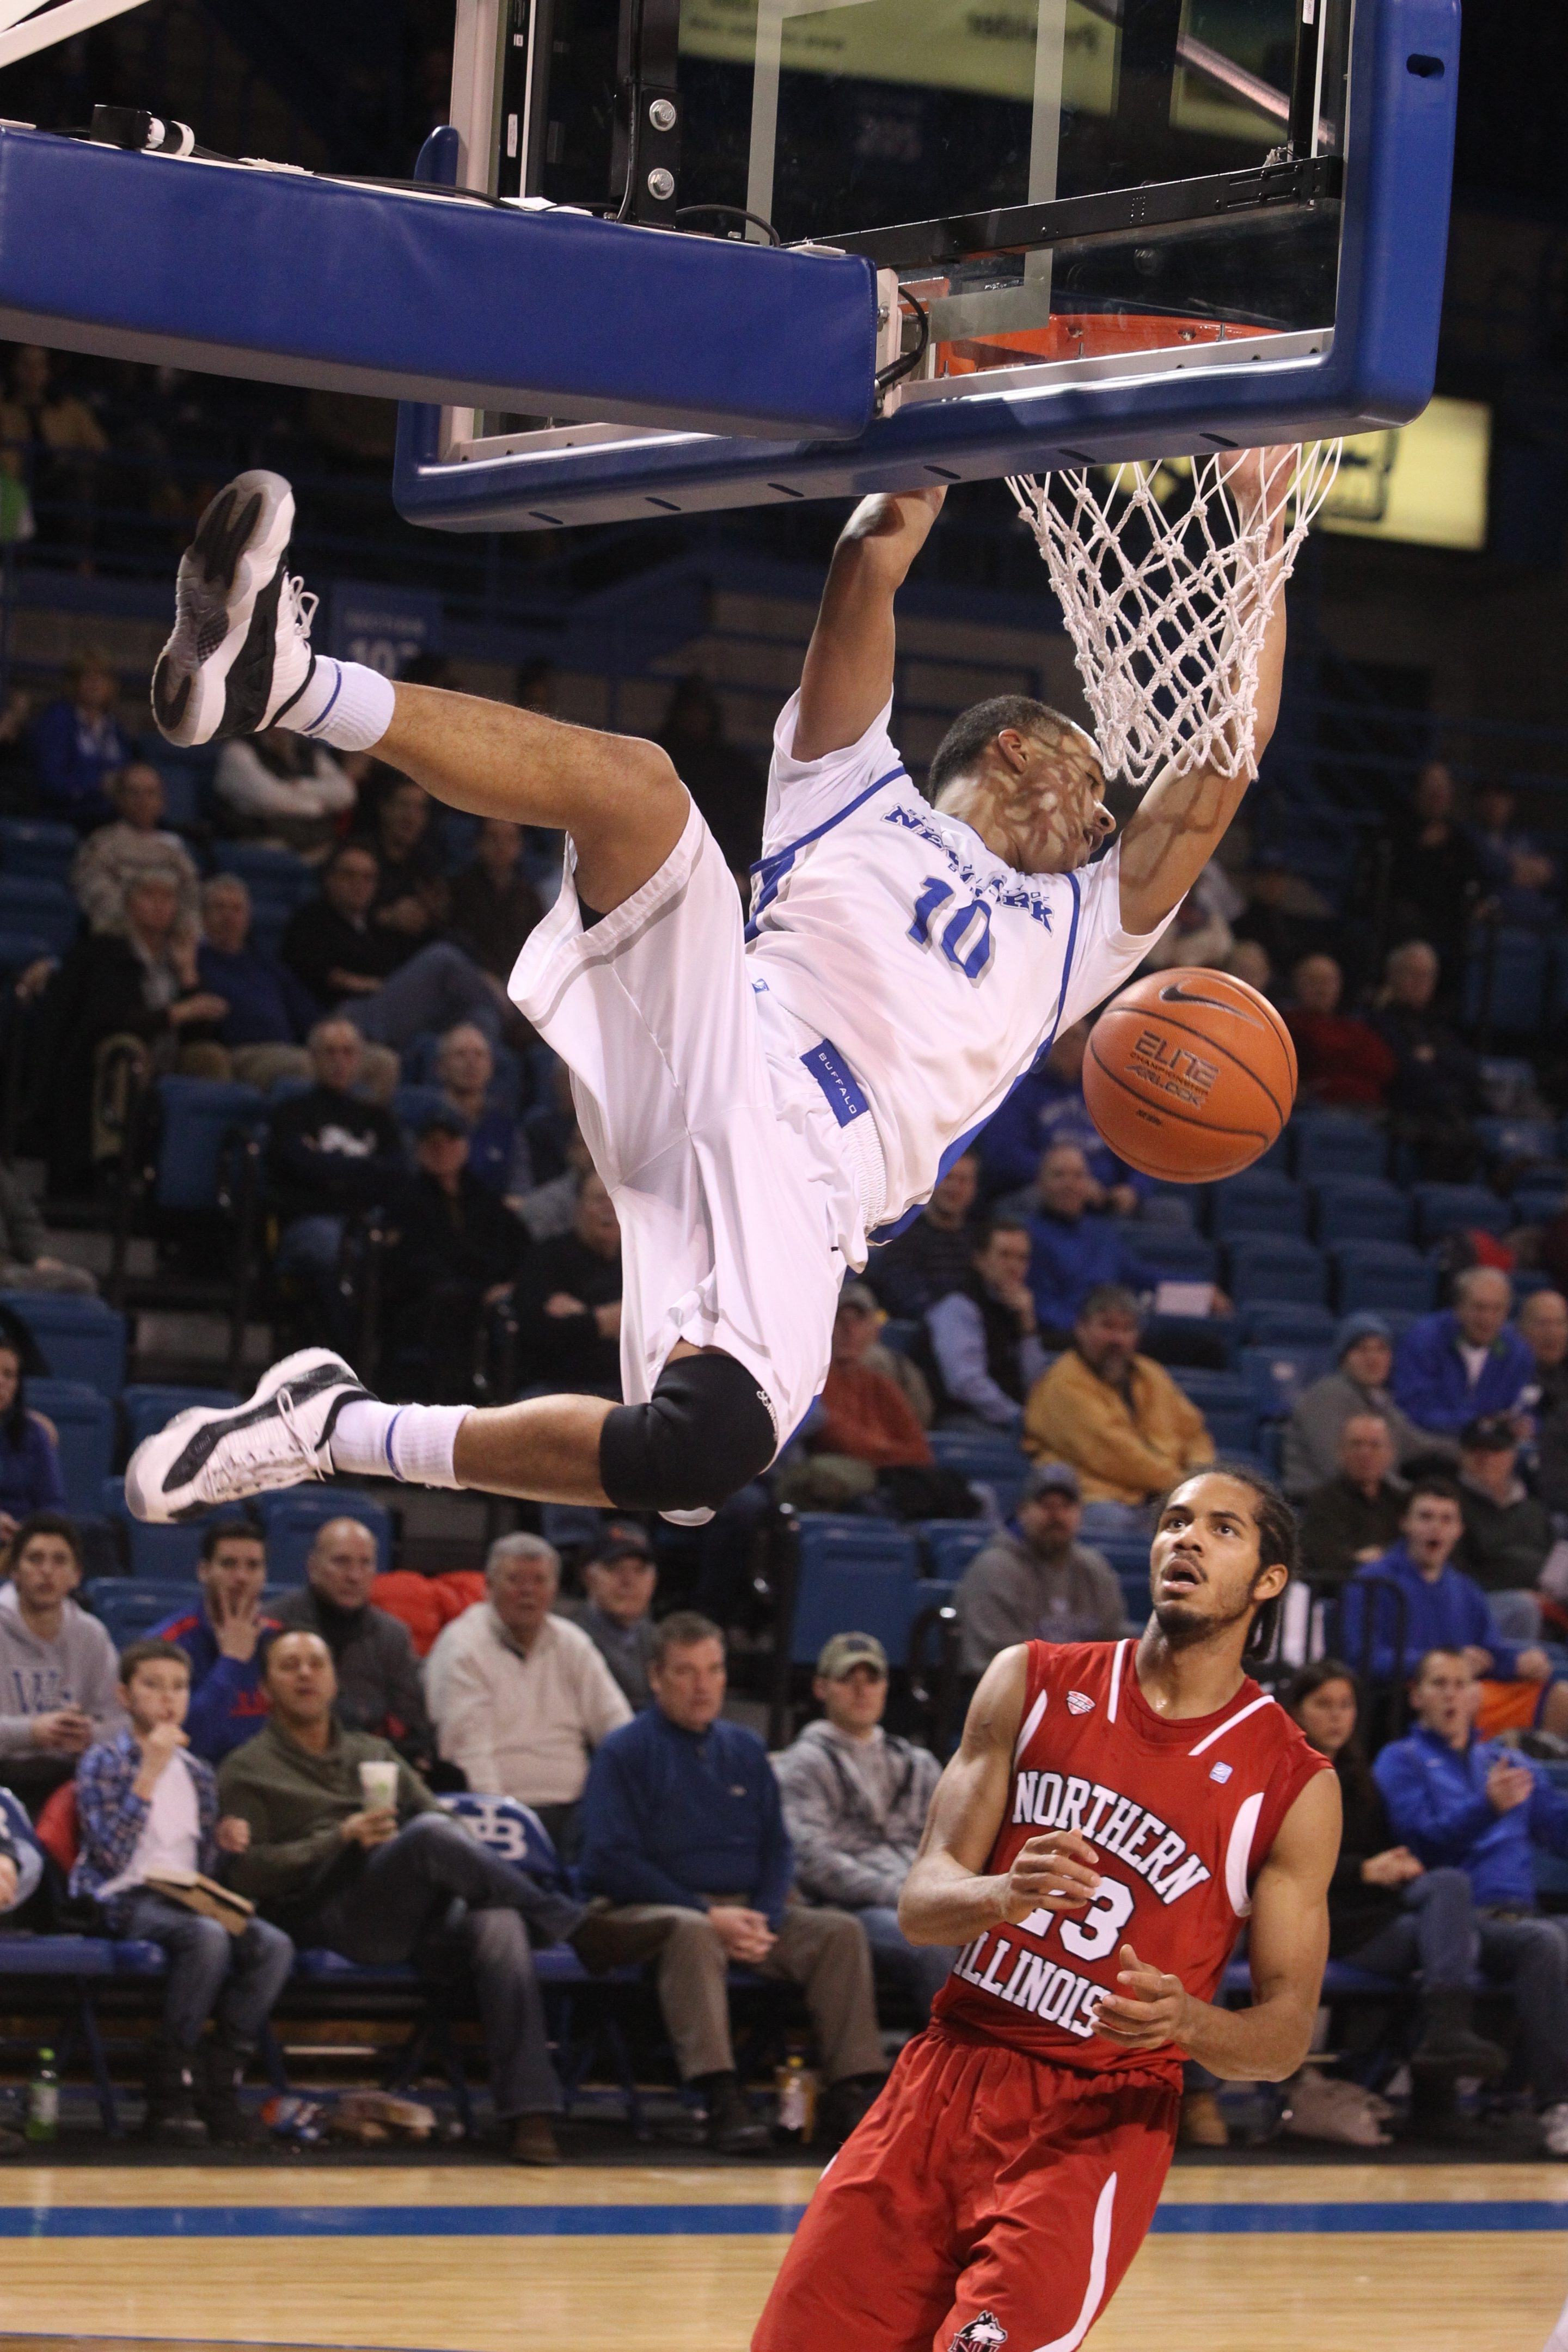 Jarryn Skeete and the UB Bulls slammed Northern Illinois during their Mid-American Conference opener Wednesday night at Alumni Arena.